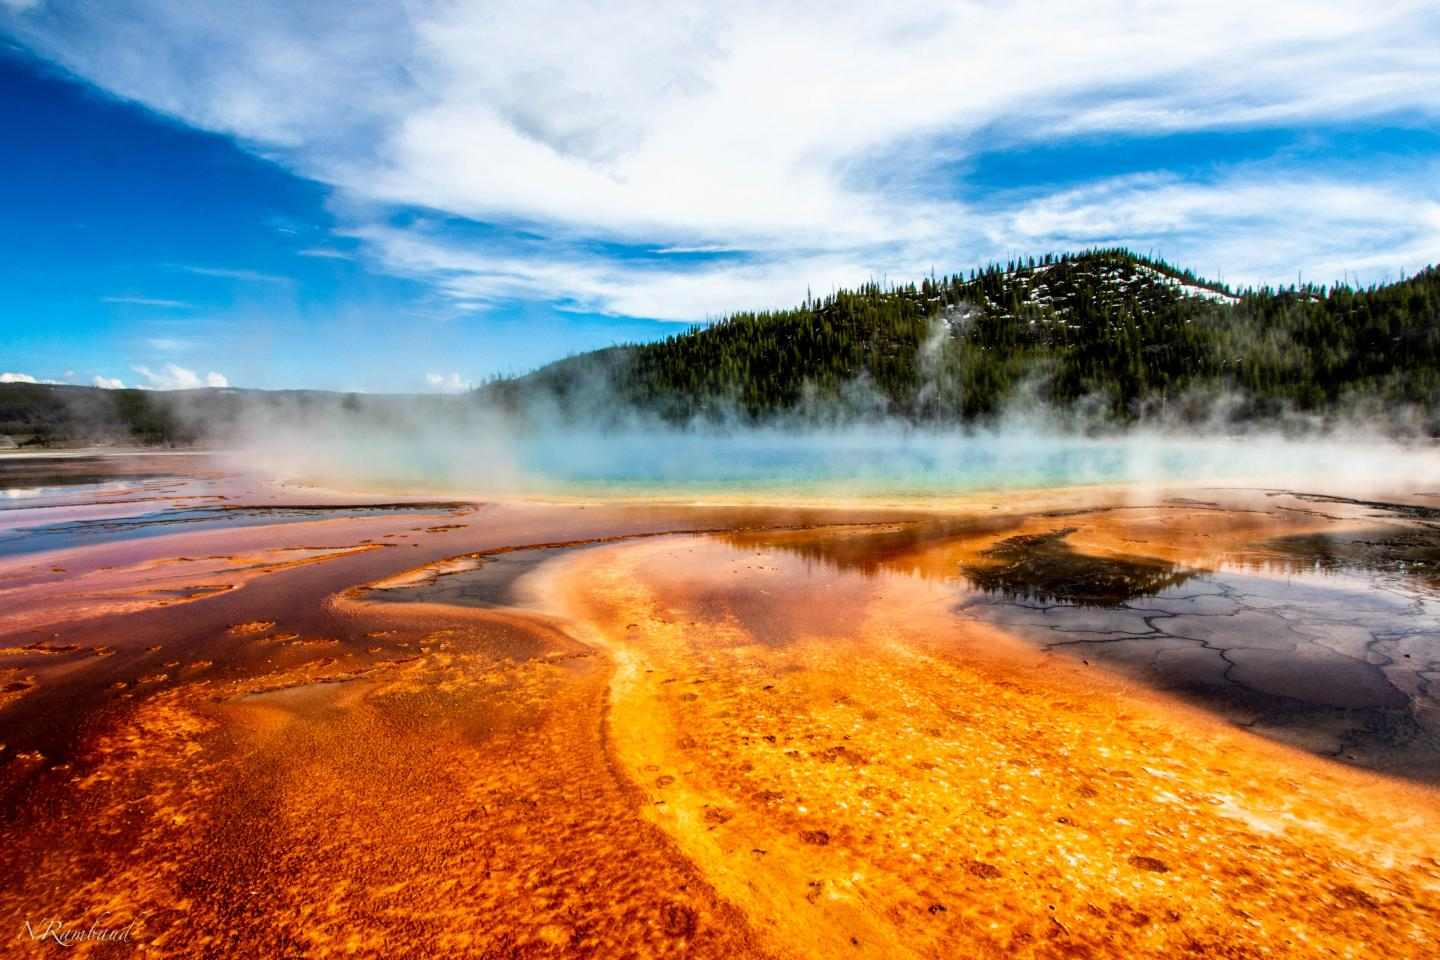 Some Scientists Believe Life Formed in Thermal Pools like Those in Yellowstone National Park